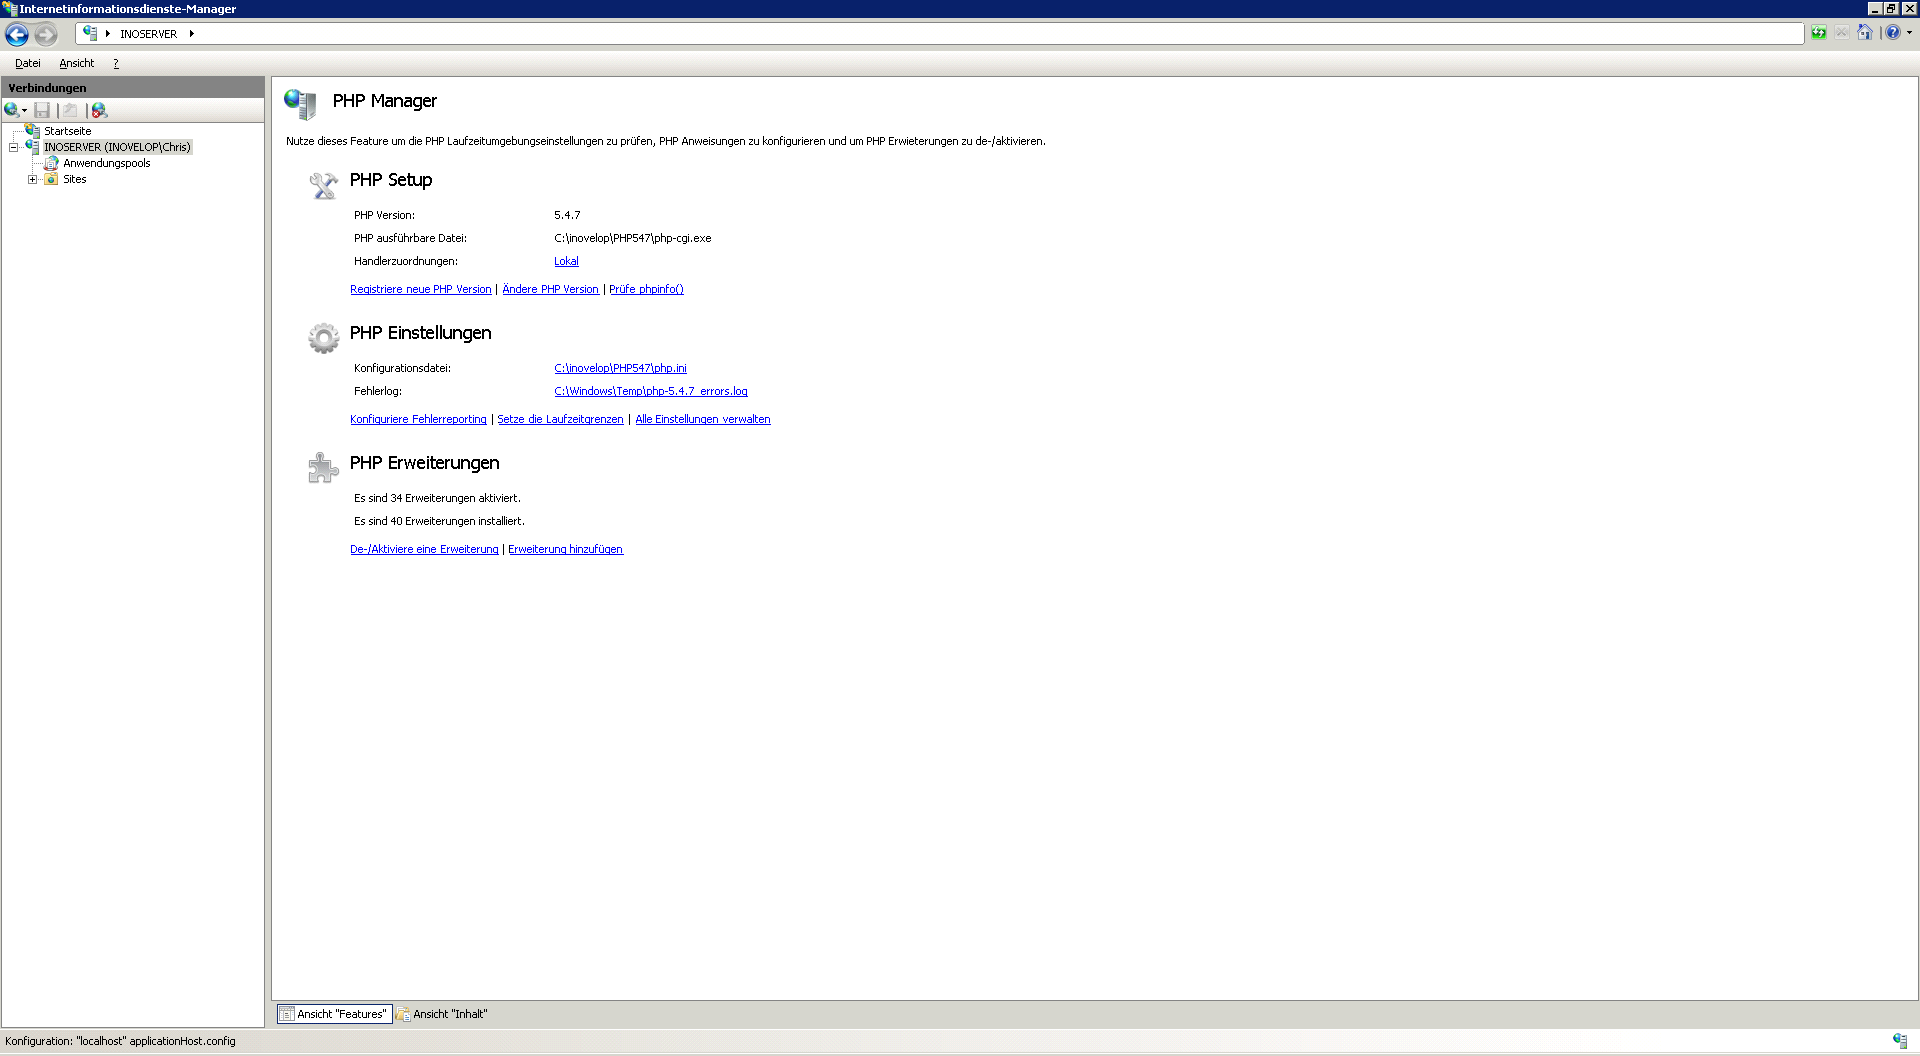 PHP Manager unter IIS 7.0